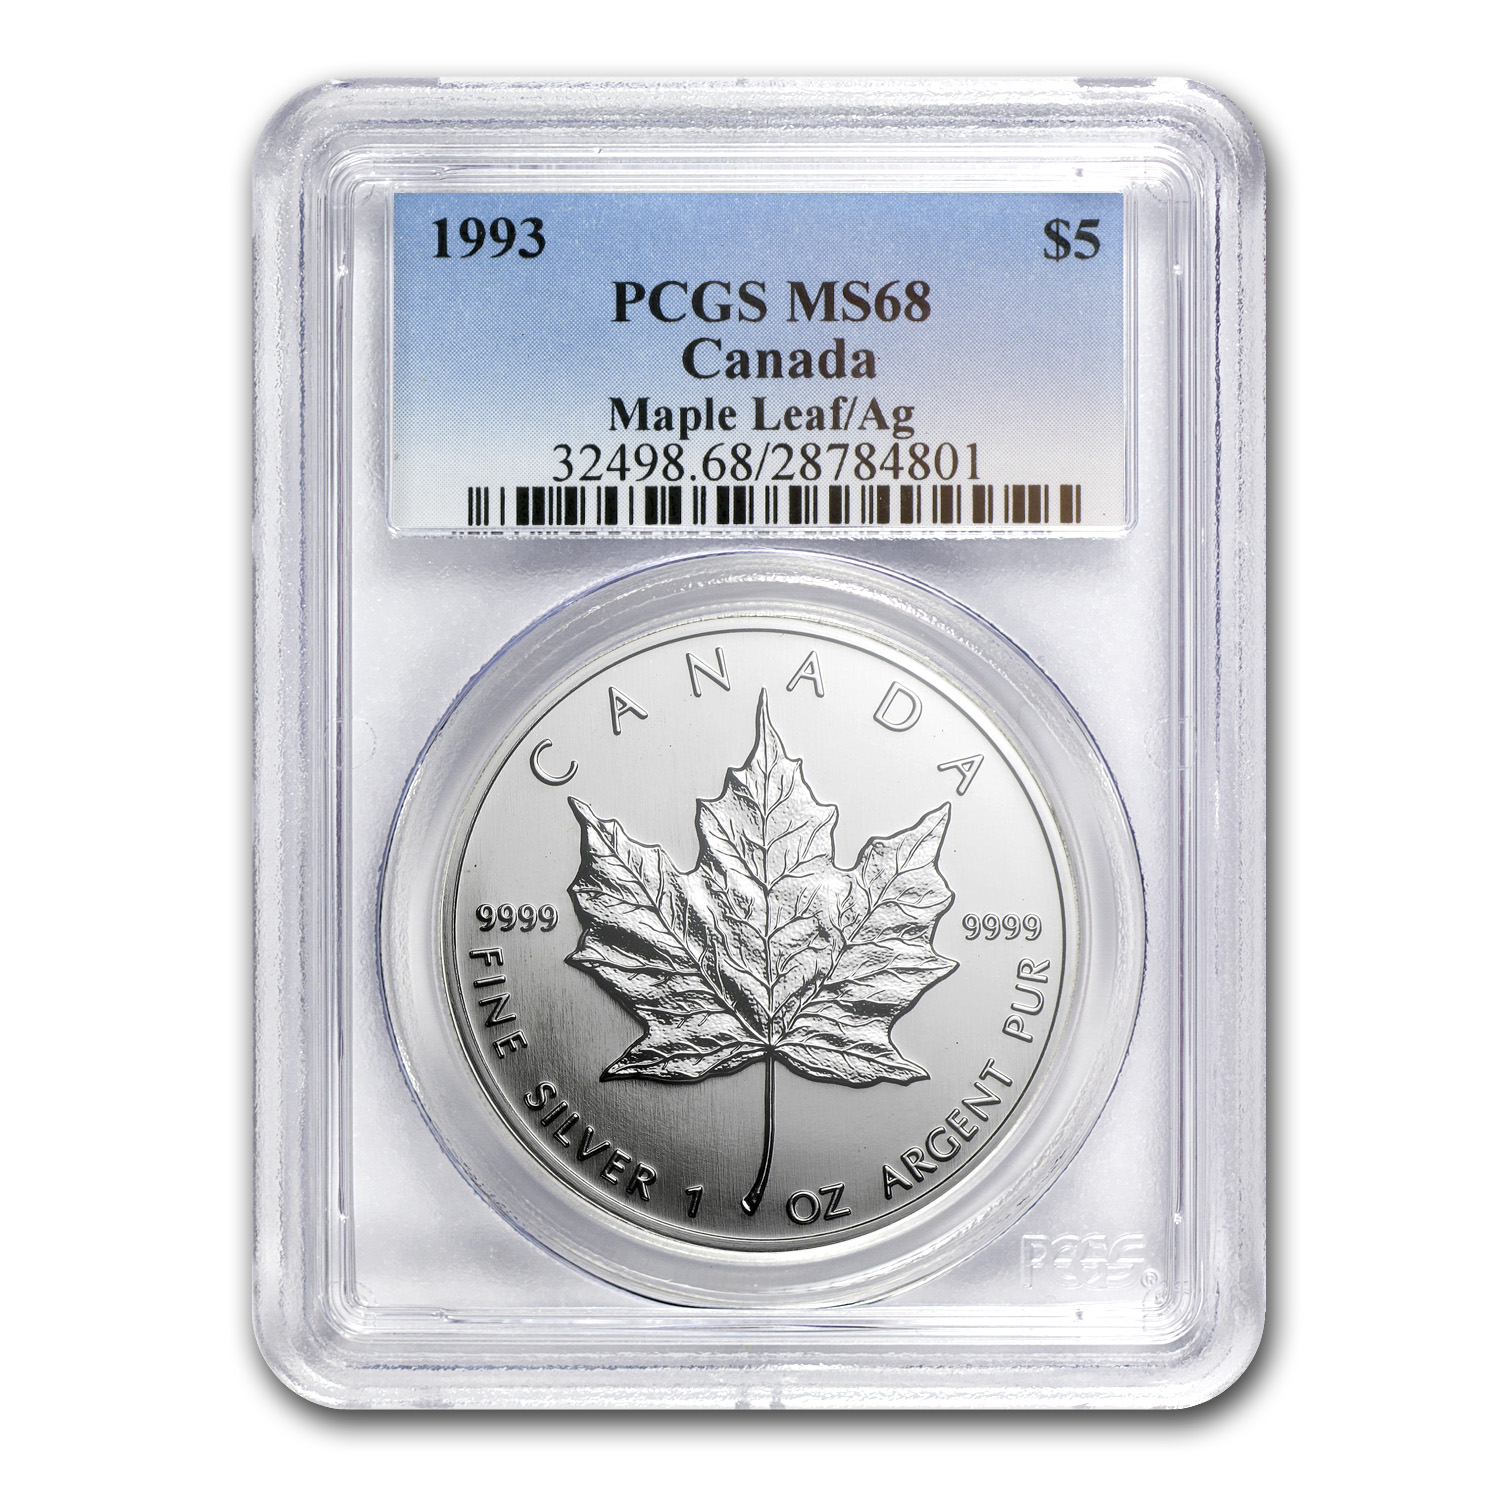 1993 1 oz Silver Canadian Maple Leaf MS-68 PCGS